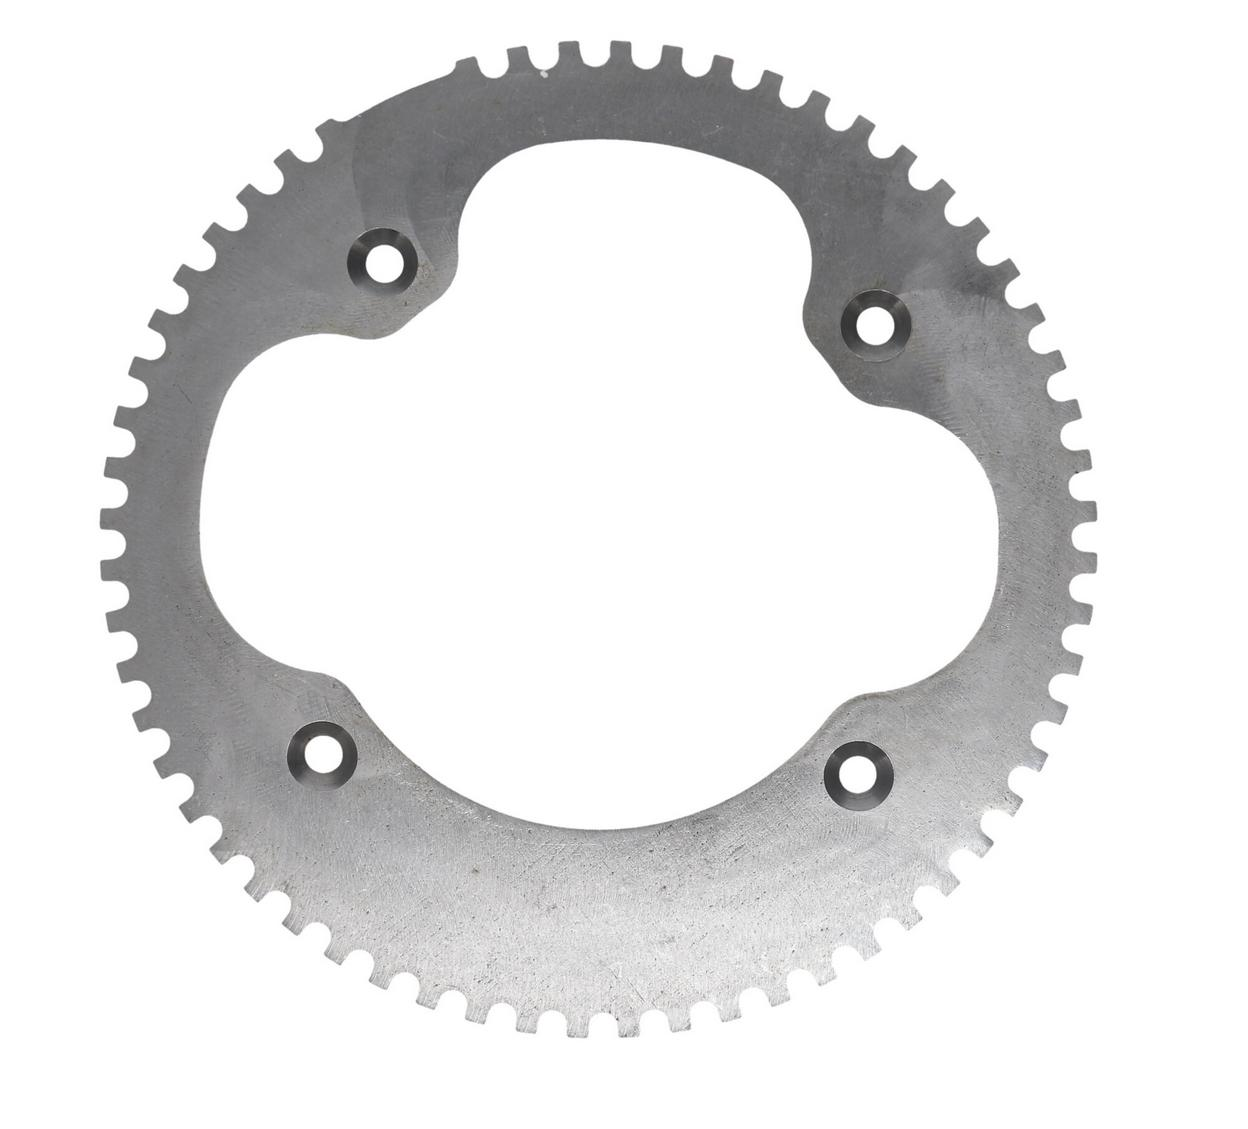 K1 Technologies TR-58170 Chrysler 5.7L/6.4L 58 tooth Reluctor Ring .170wide